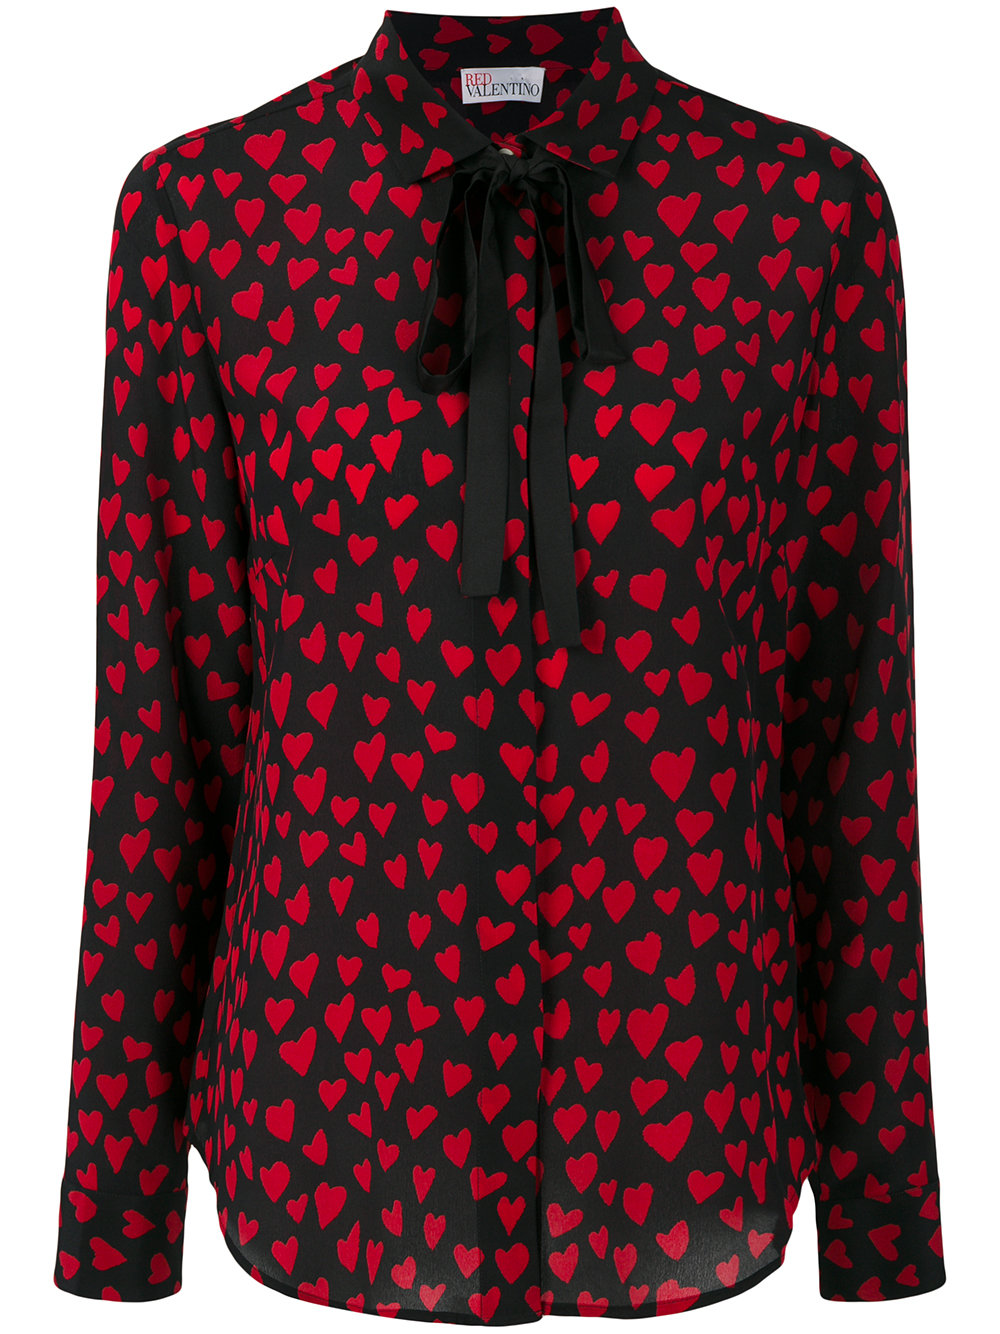 RED VALENTINO heart blouse - $595